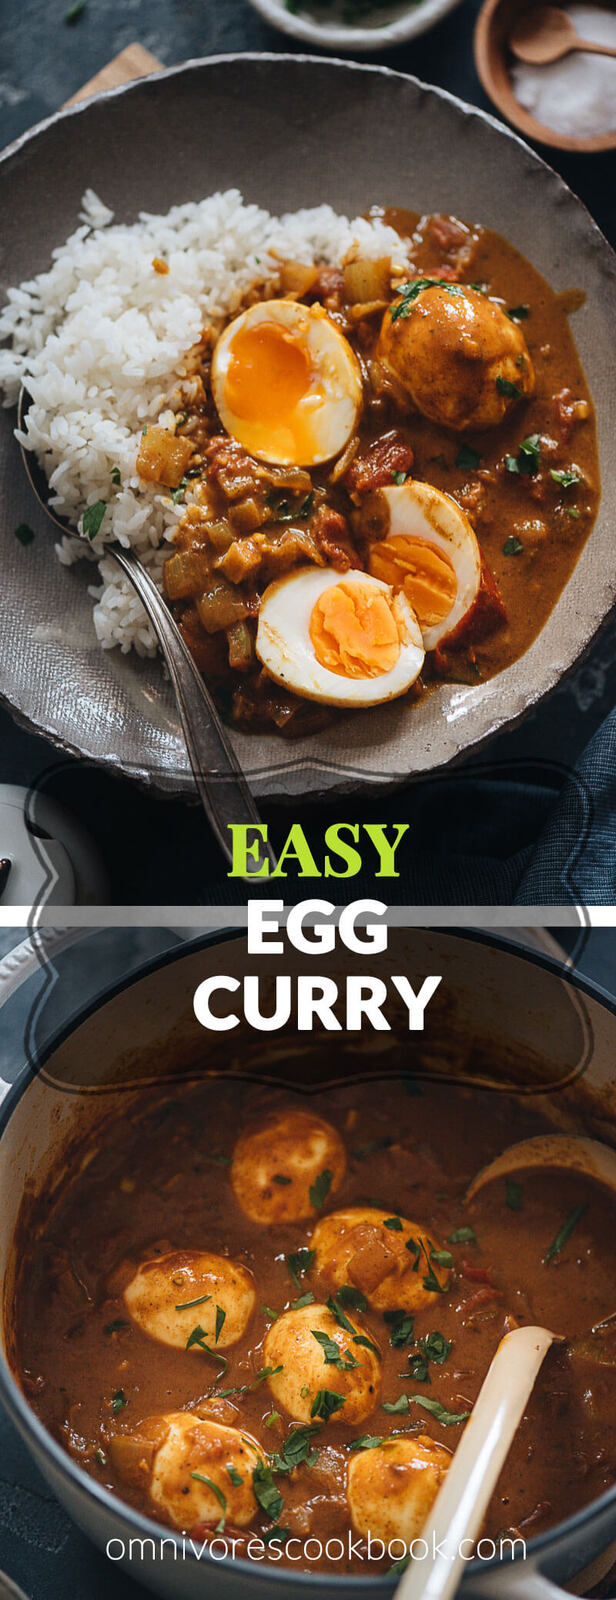 Easy Egg Curry - Tender eggs are smothered in a super rich curry sauce with a tomato and coconut base. The recipe shows you how to cook a tasty curry using minimal ingredients, making it a perfect dish for a busy weekday dinner. {Gluten-Free}